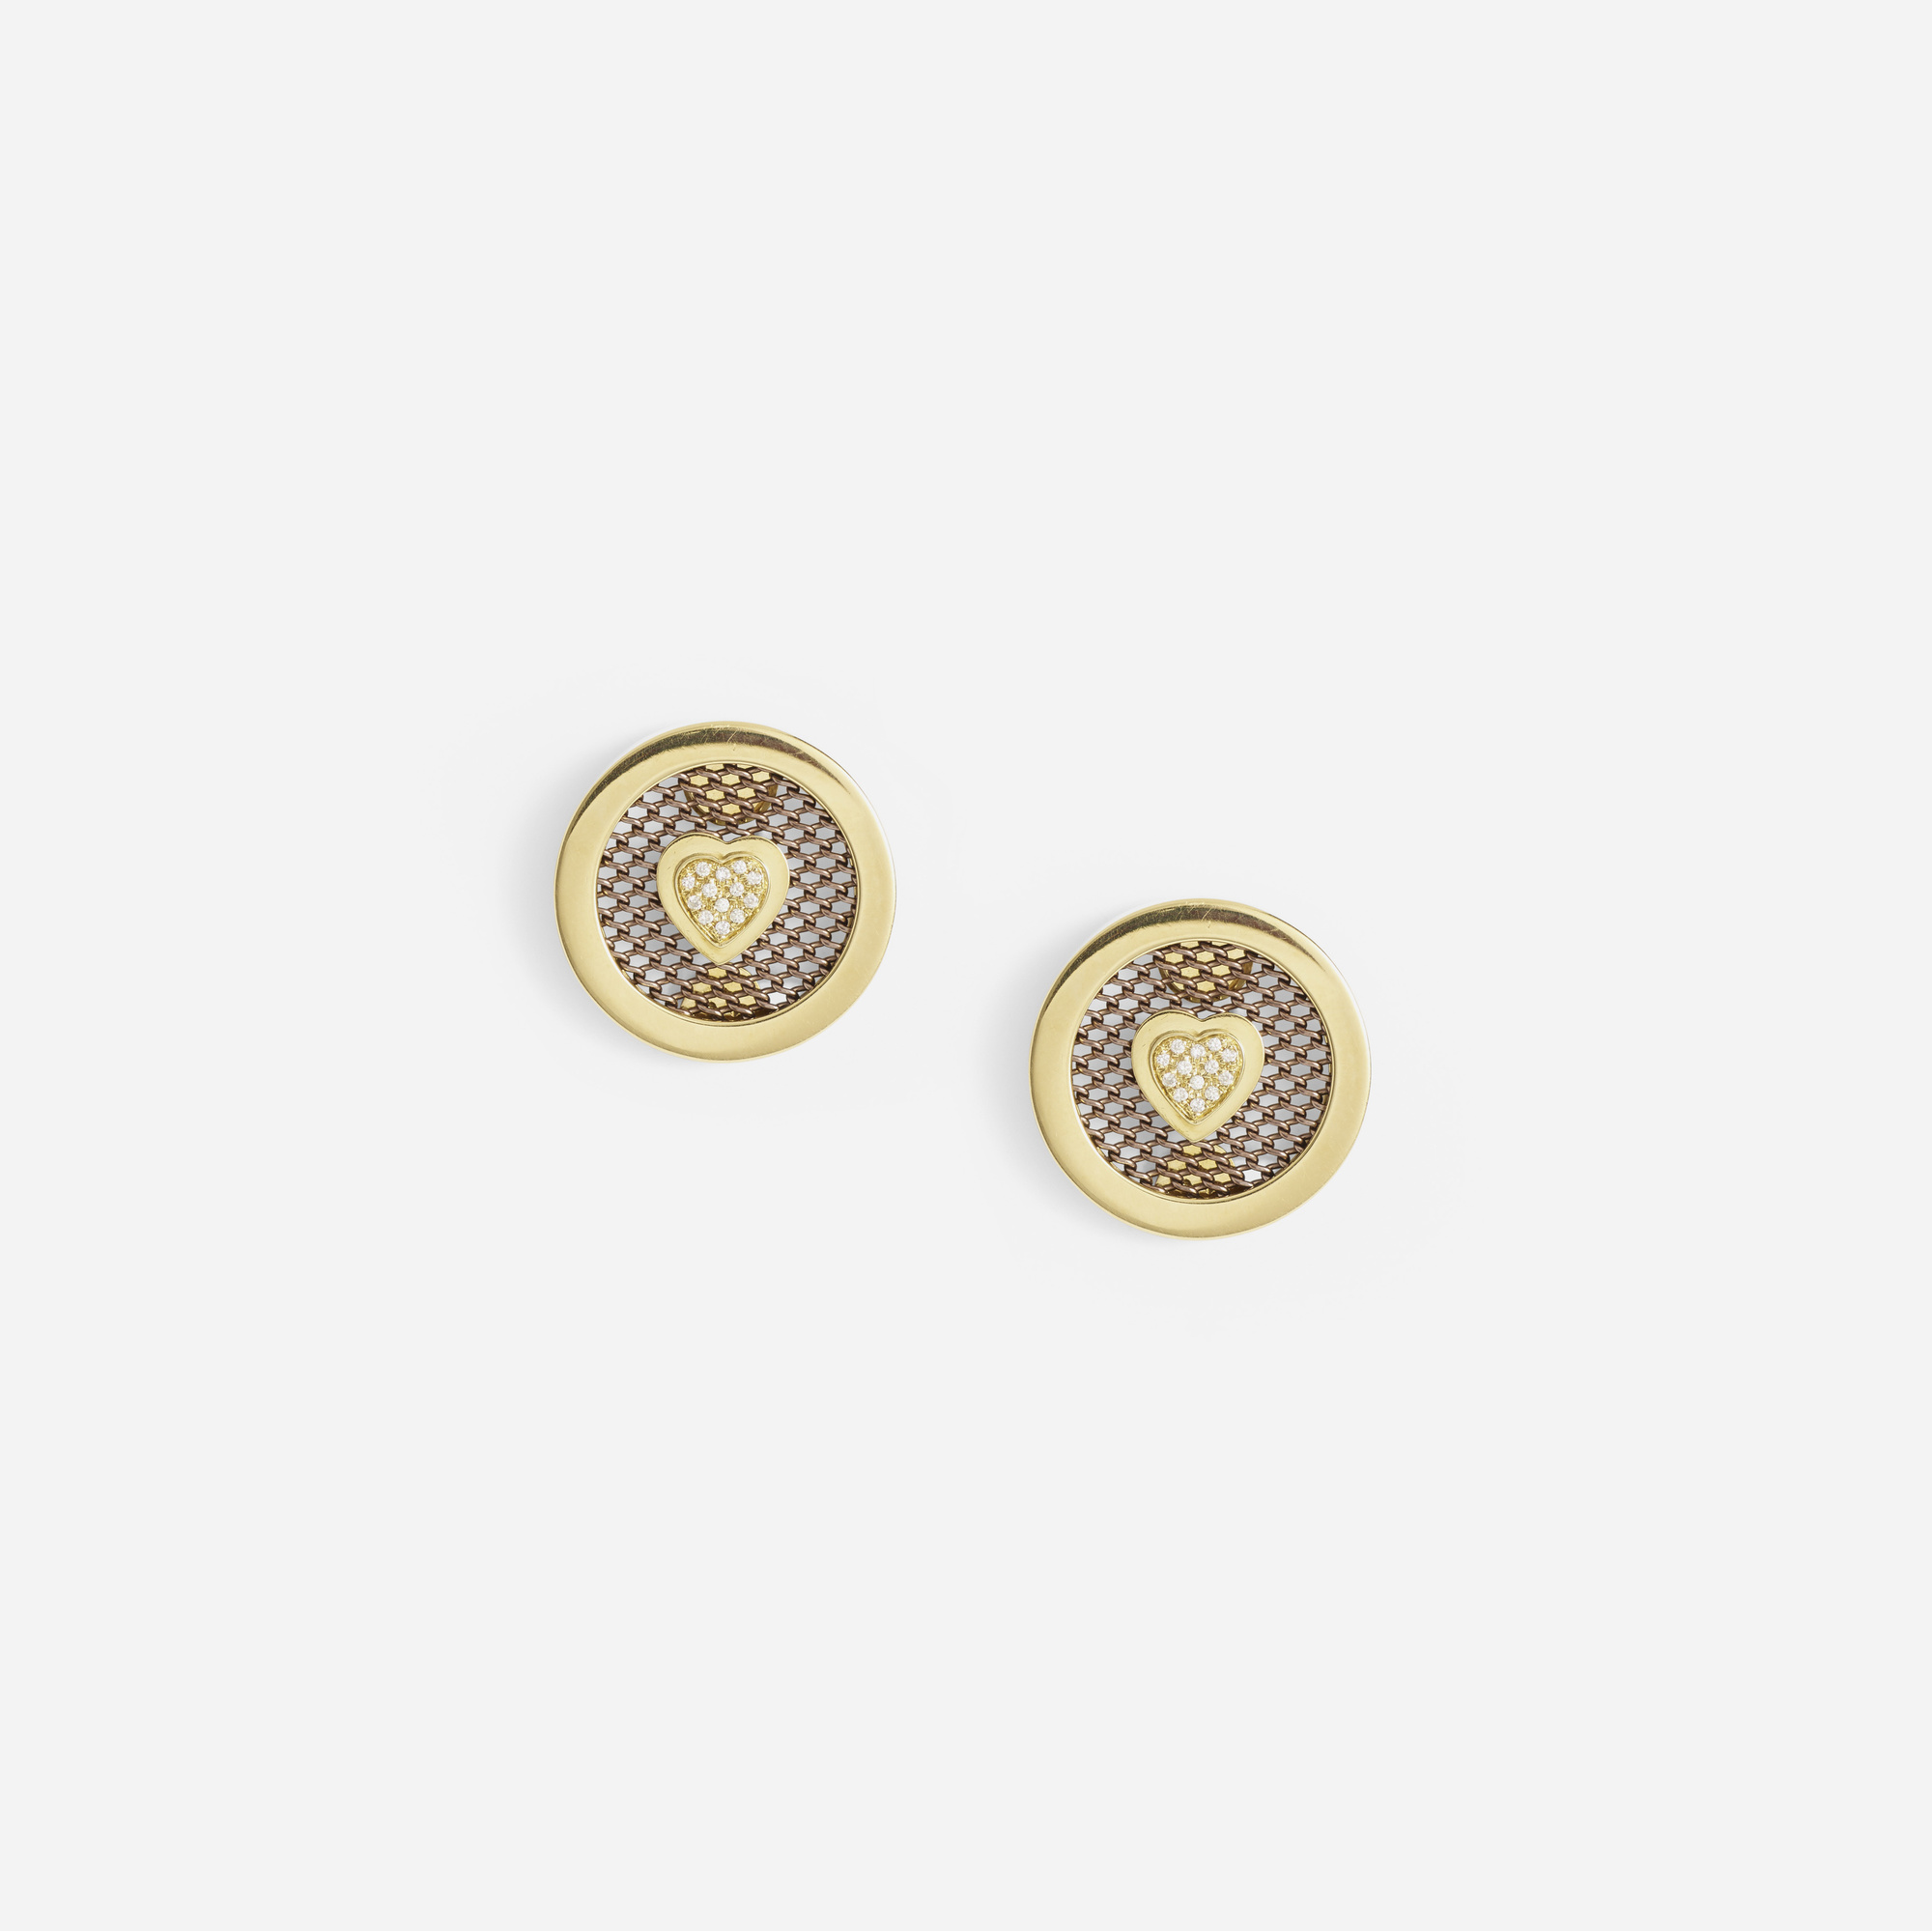 142: Sabbadini / A pair of gold, sterling silver and diamond earrings (1 of 1)